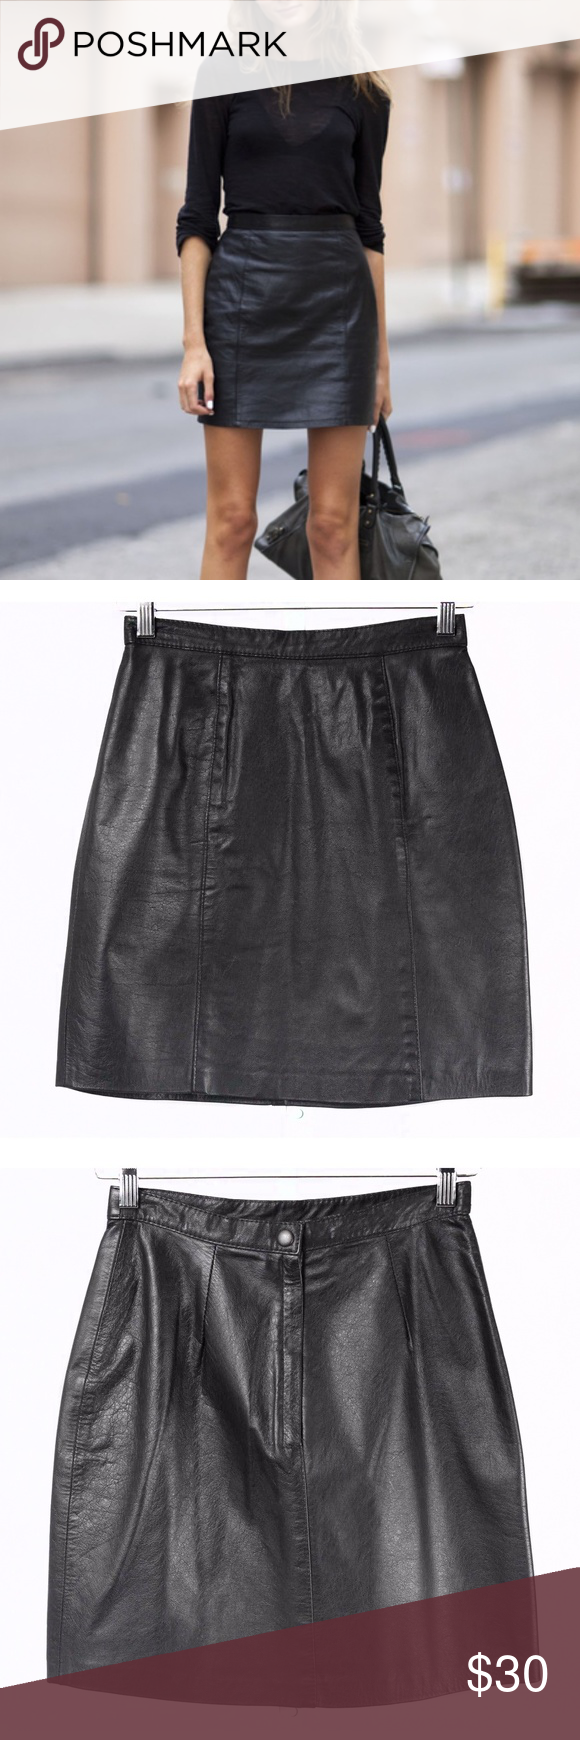 6d7c2aa2d Vintage Comint Black Leather High Waist Skirt Vintage 80s Comint black  genuine leather high waisted pencil